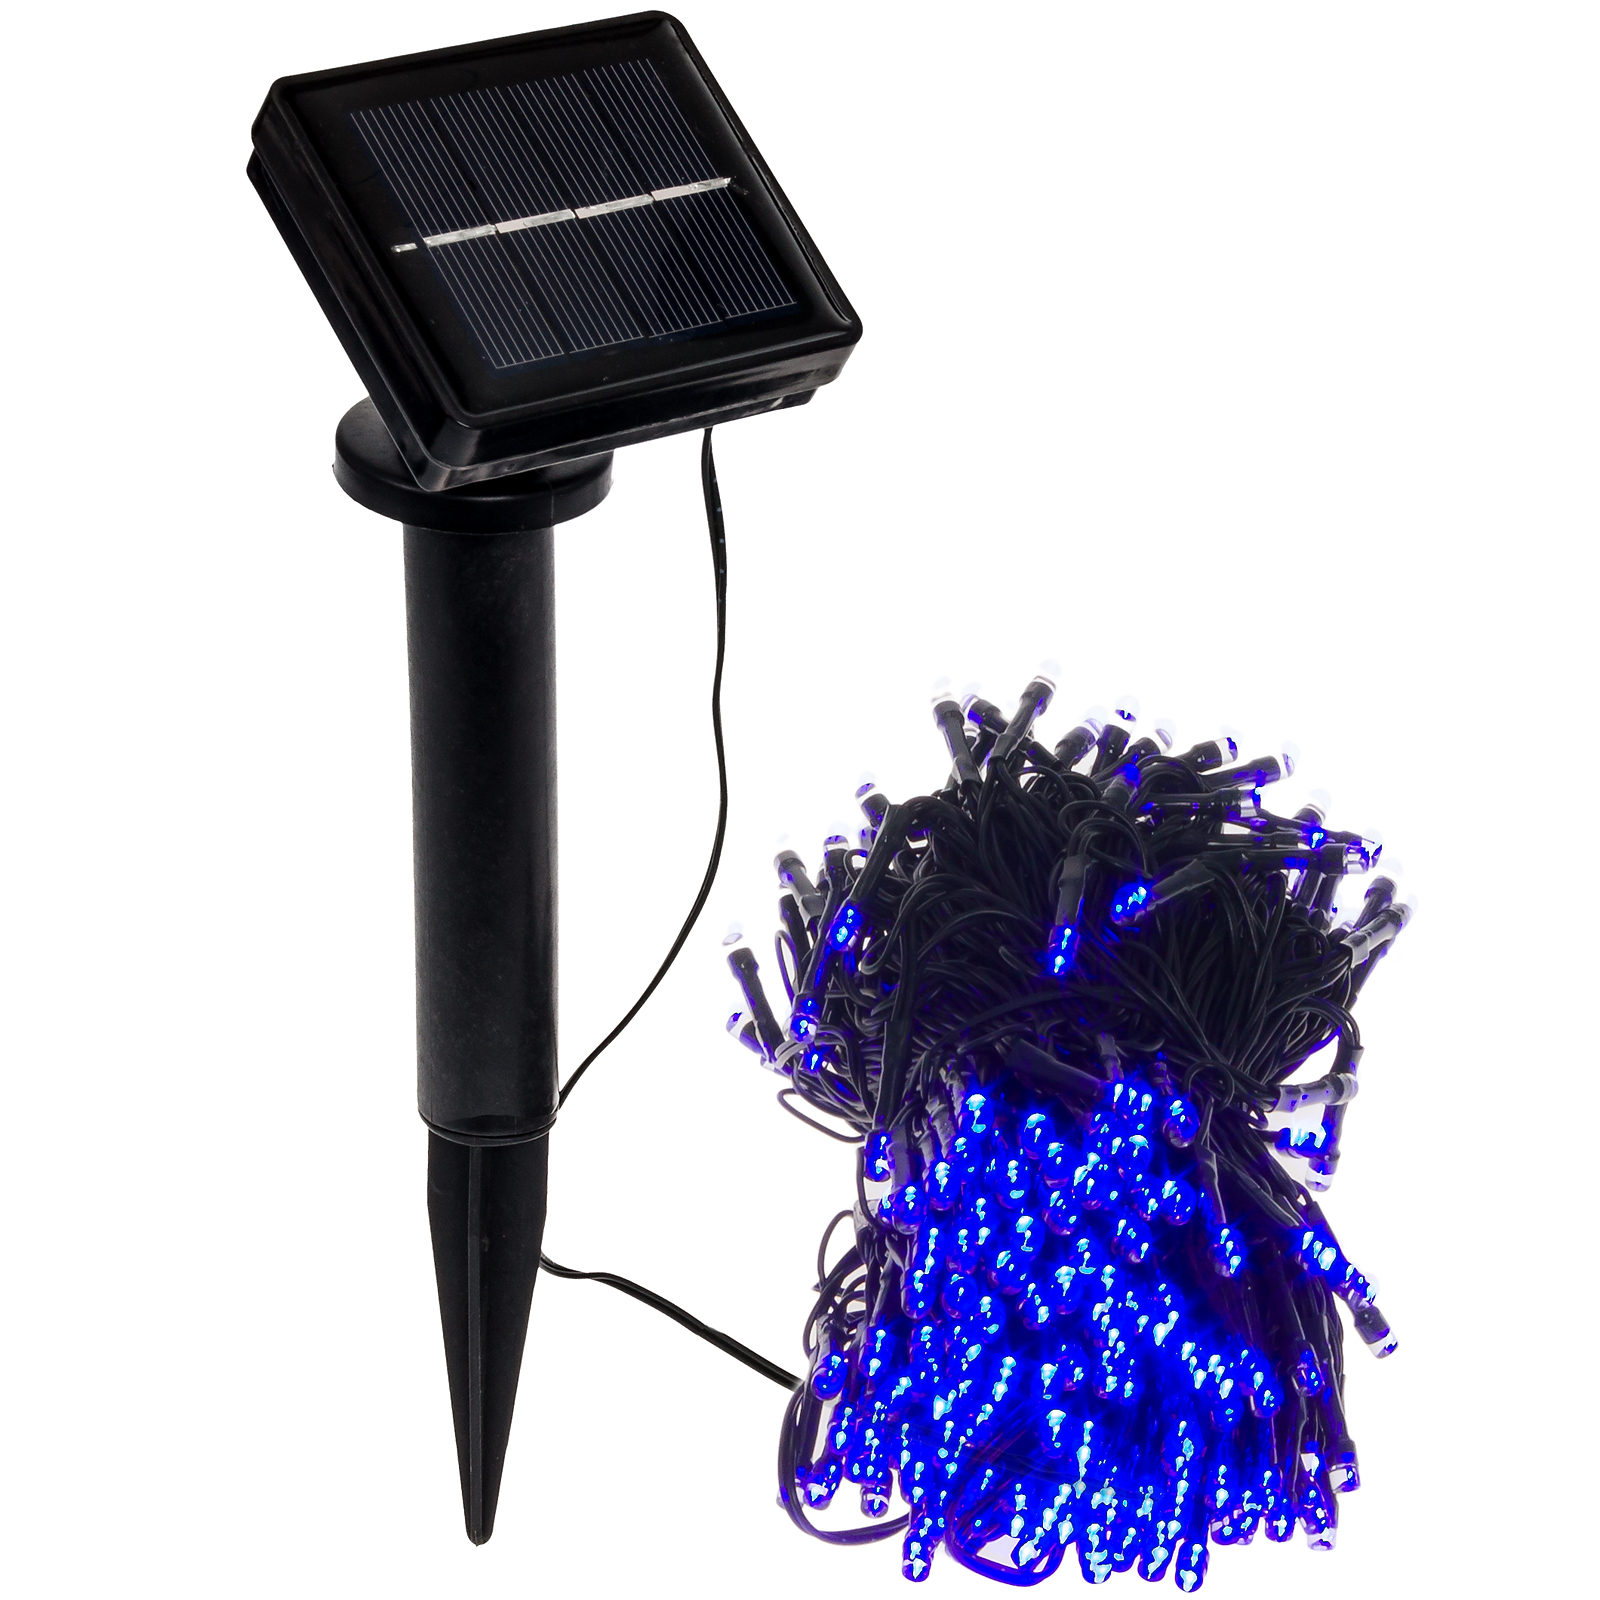 250 Solar Led String Lights : GREENLIGHTING NEW 80 Foot Solar Holiday Rope String Lights w/ 250 Blue LED s eBay